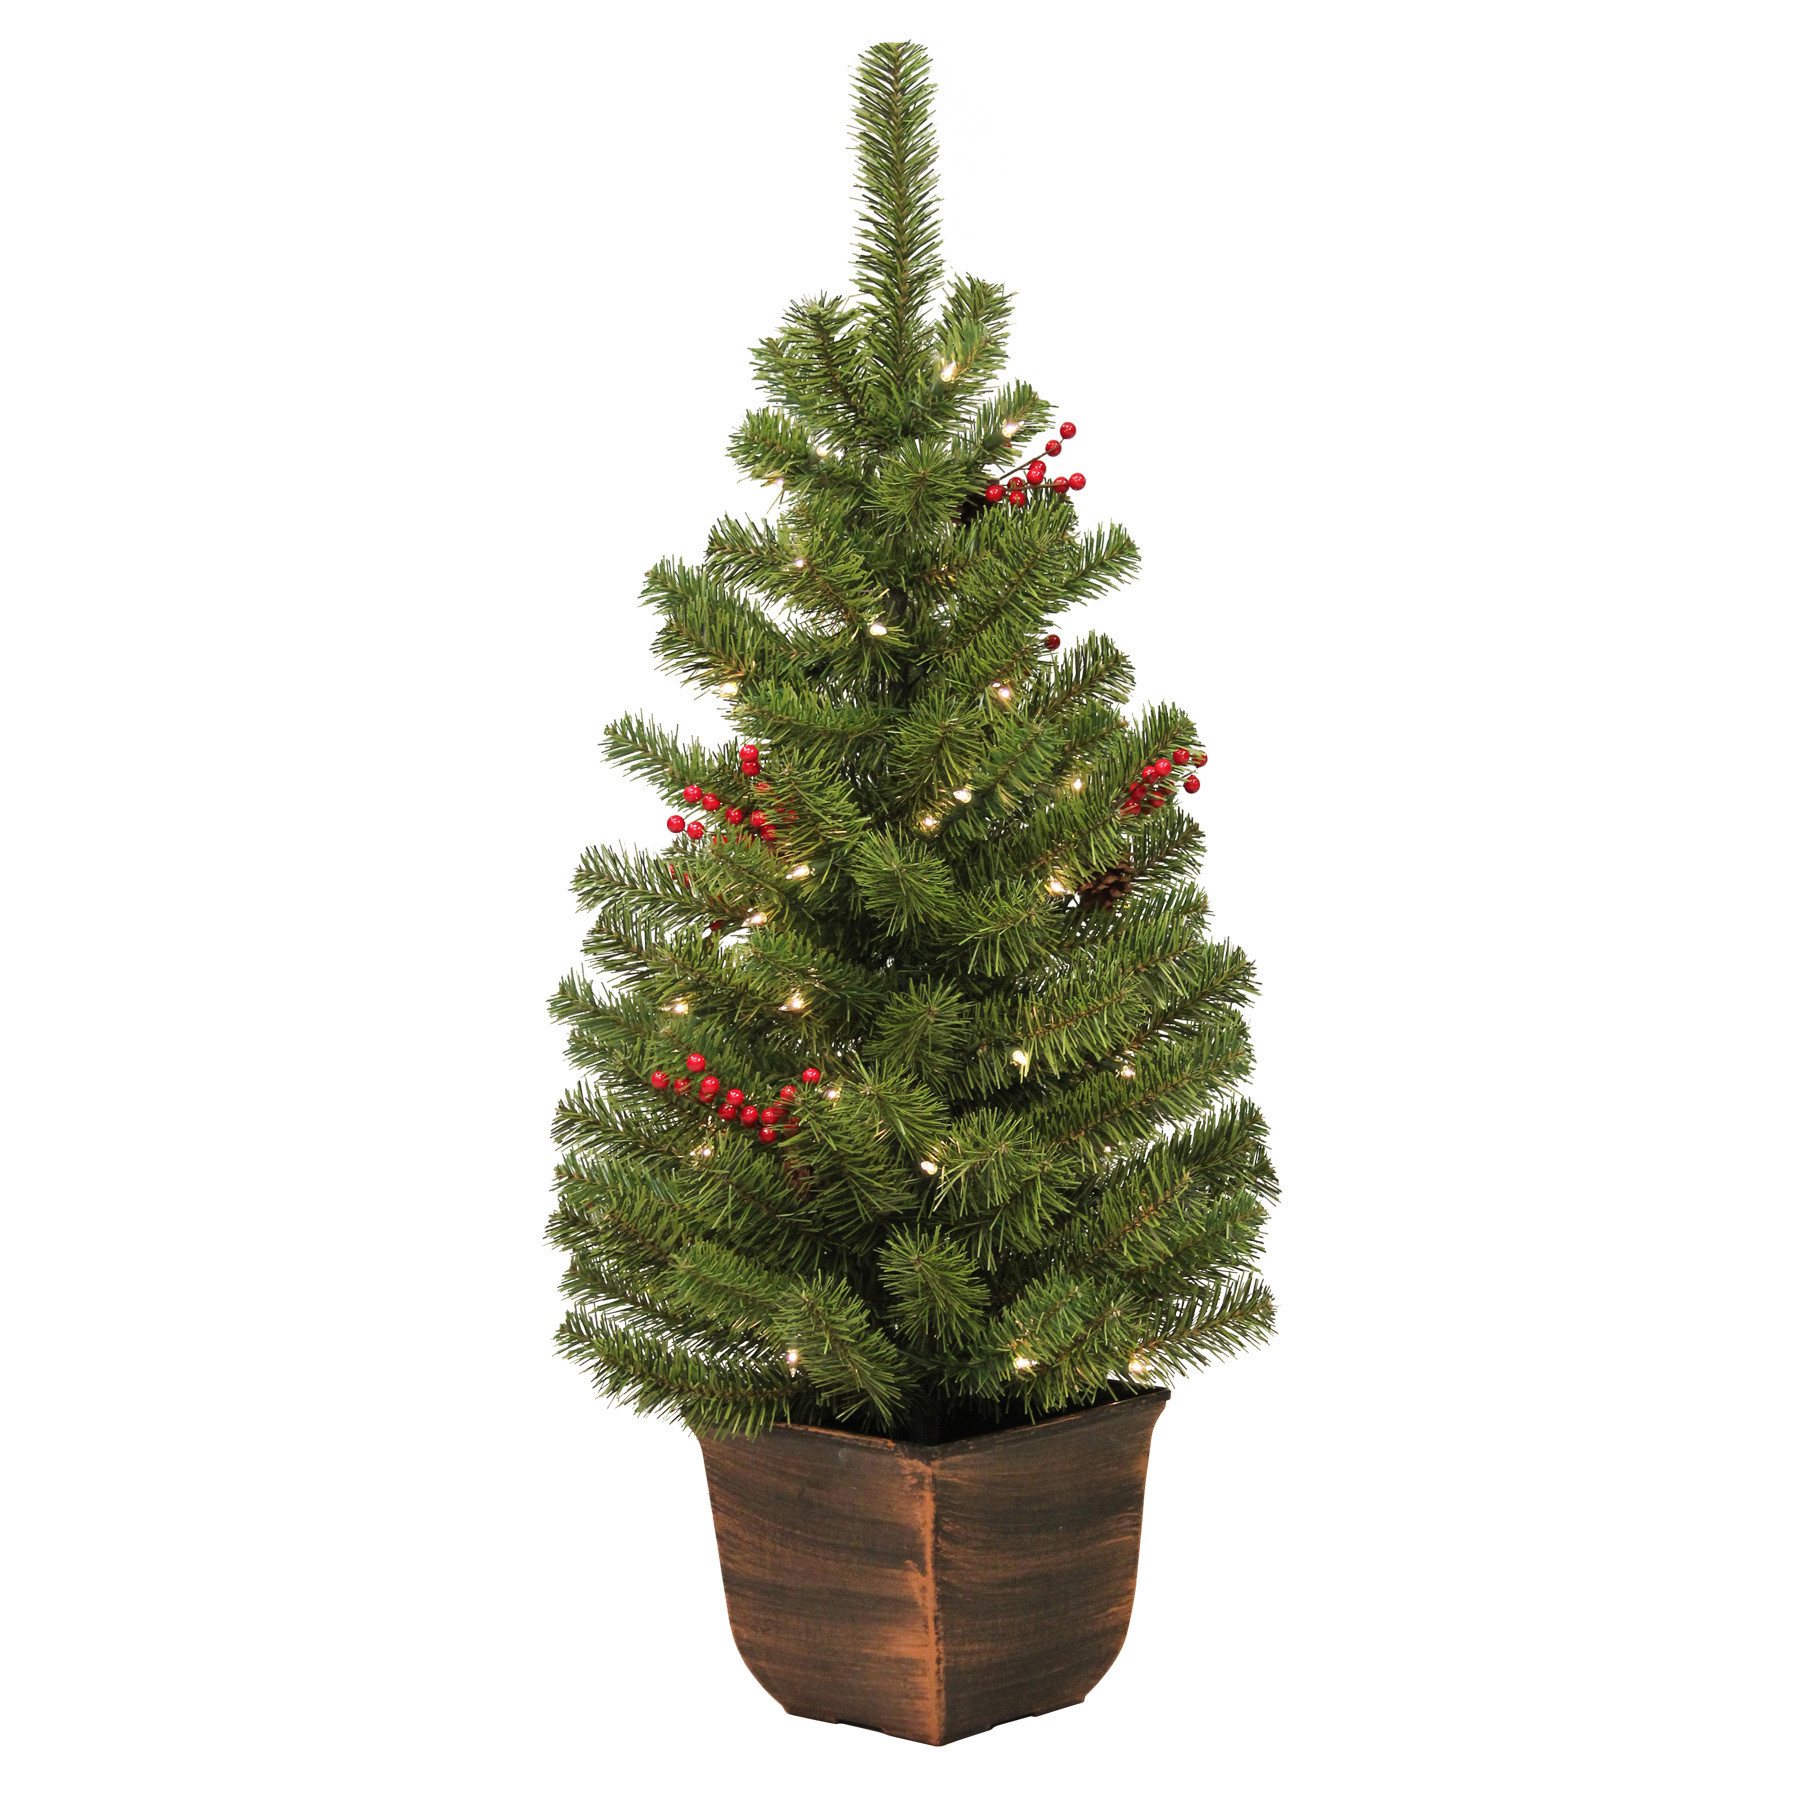 Best ideas about Entryway Christmas Tree . Save or Pin General Foam Plastics 4 Vernon Entryway Green Artificial Now.